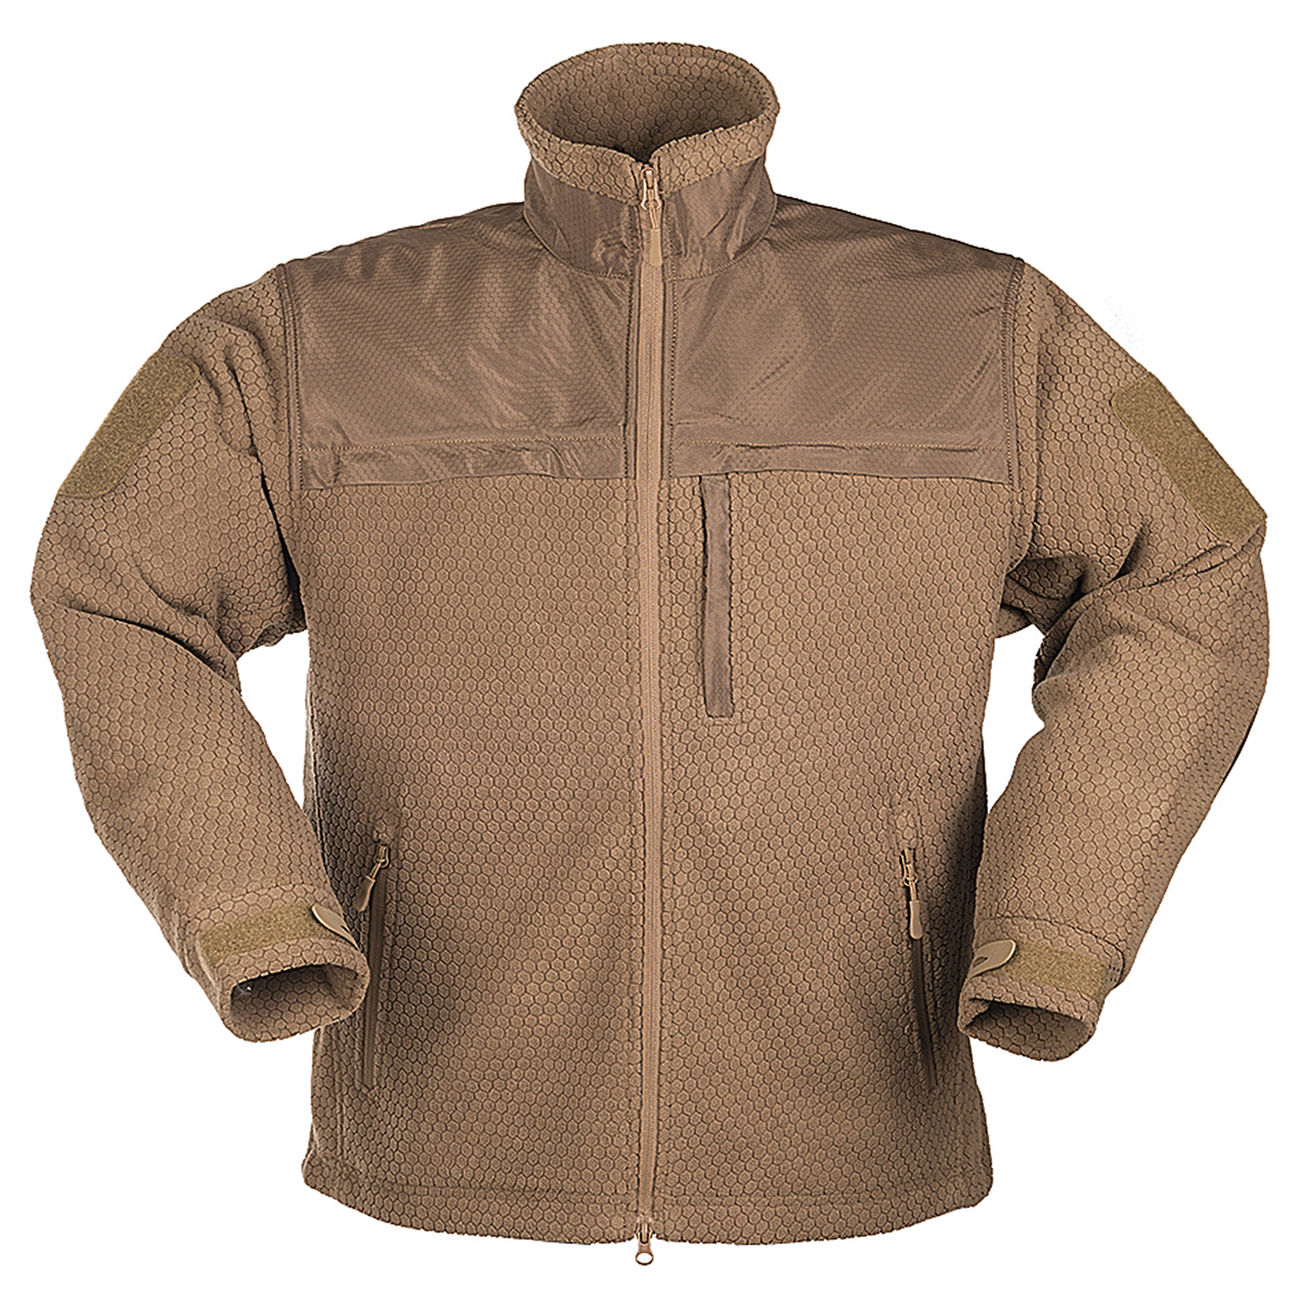 HexTac Fleecejacke Elite dark coyote 1